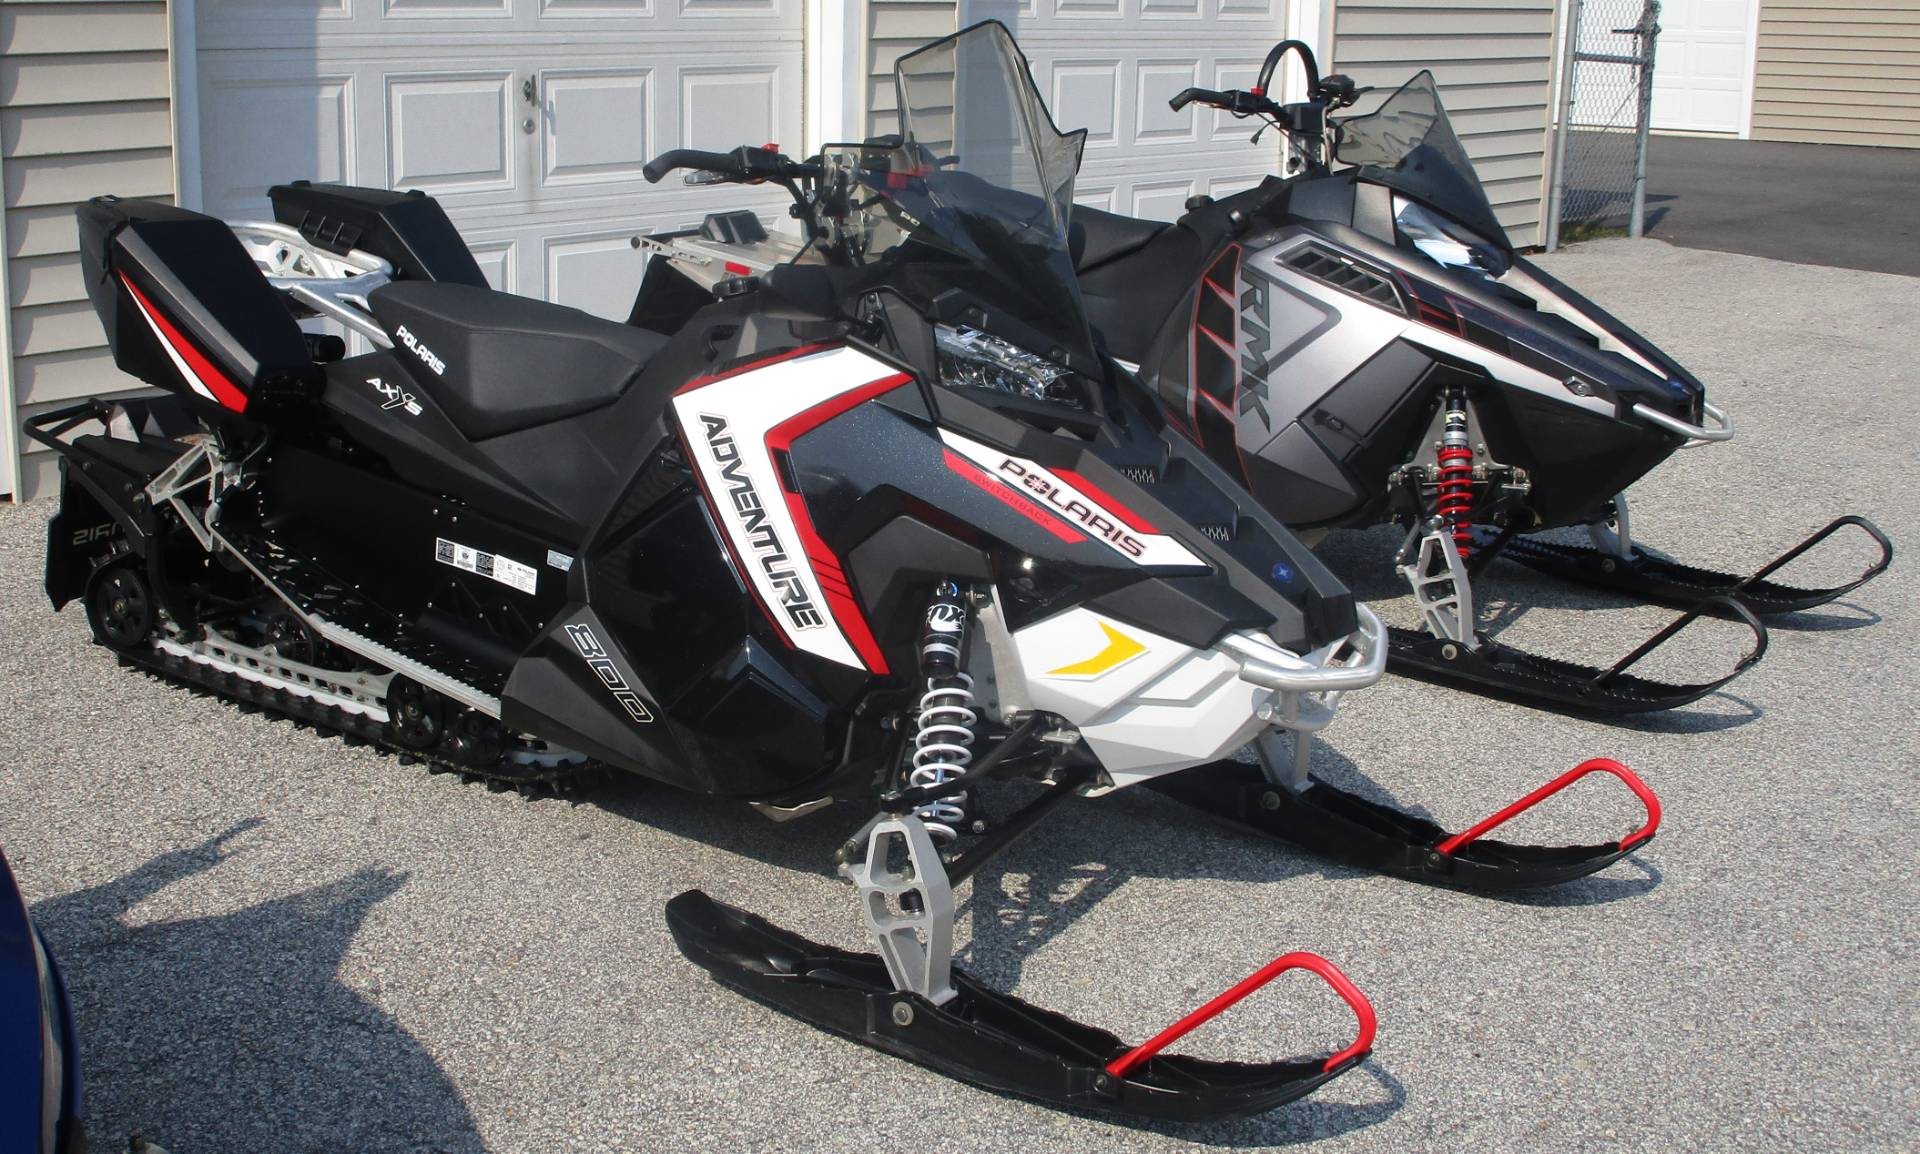 2016 Polaris 800 SWITCHBACK Adventure in Newport, Maine - Photo 2